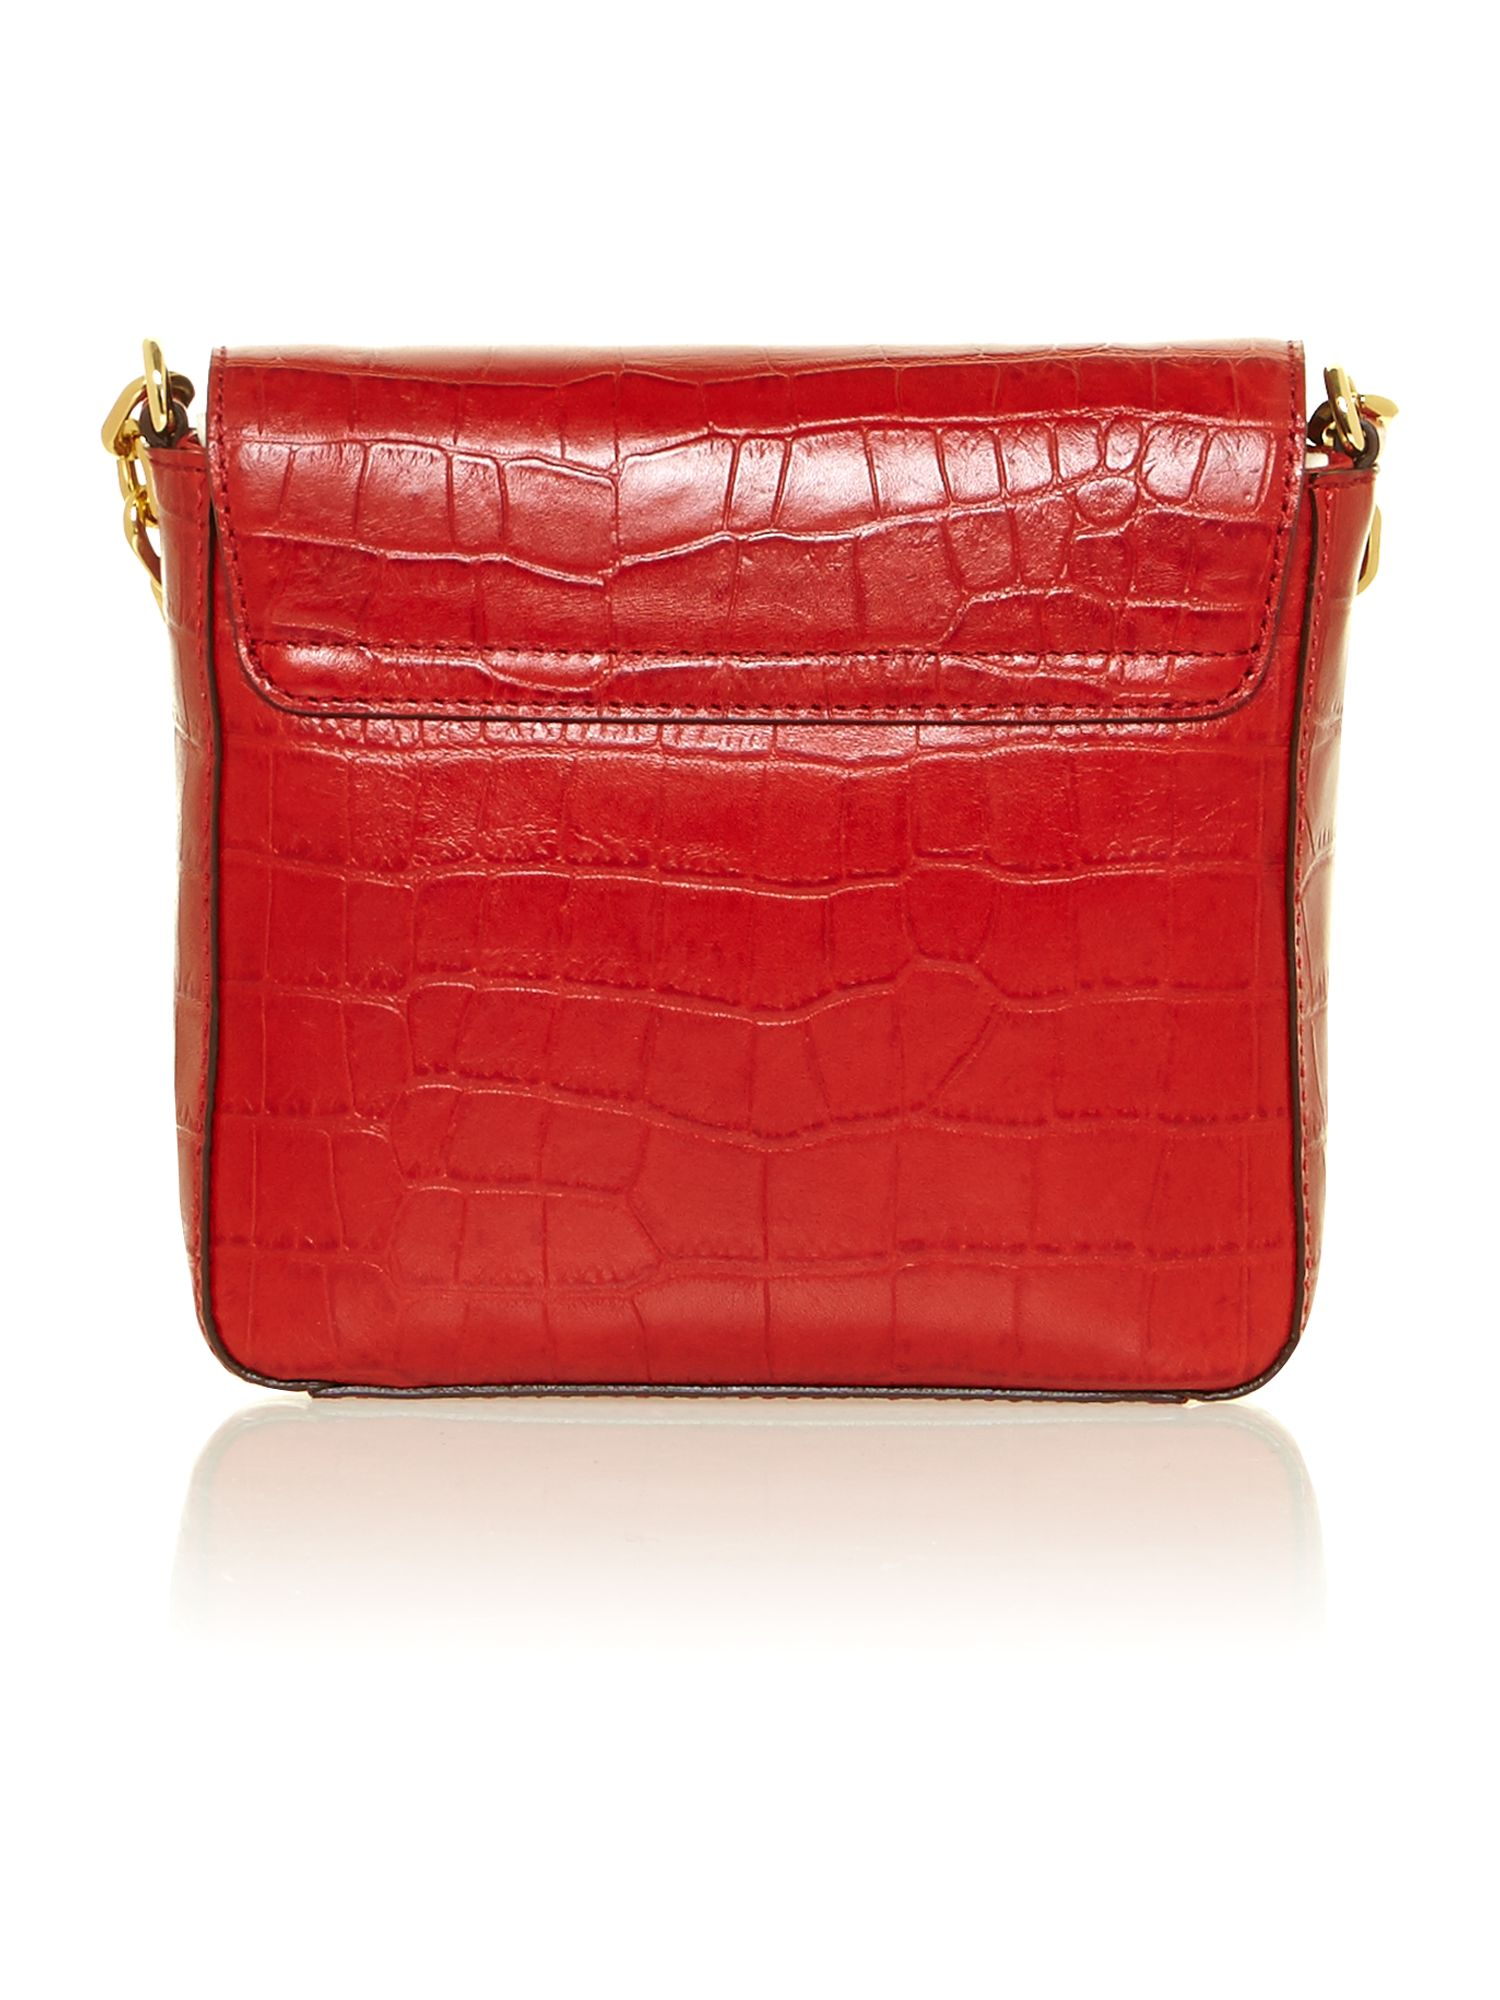 Lanesborough red small crossbrody bag